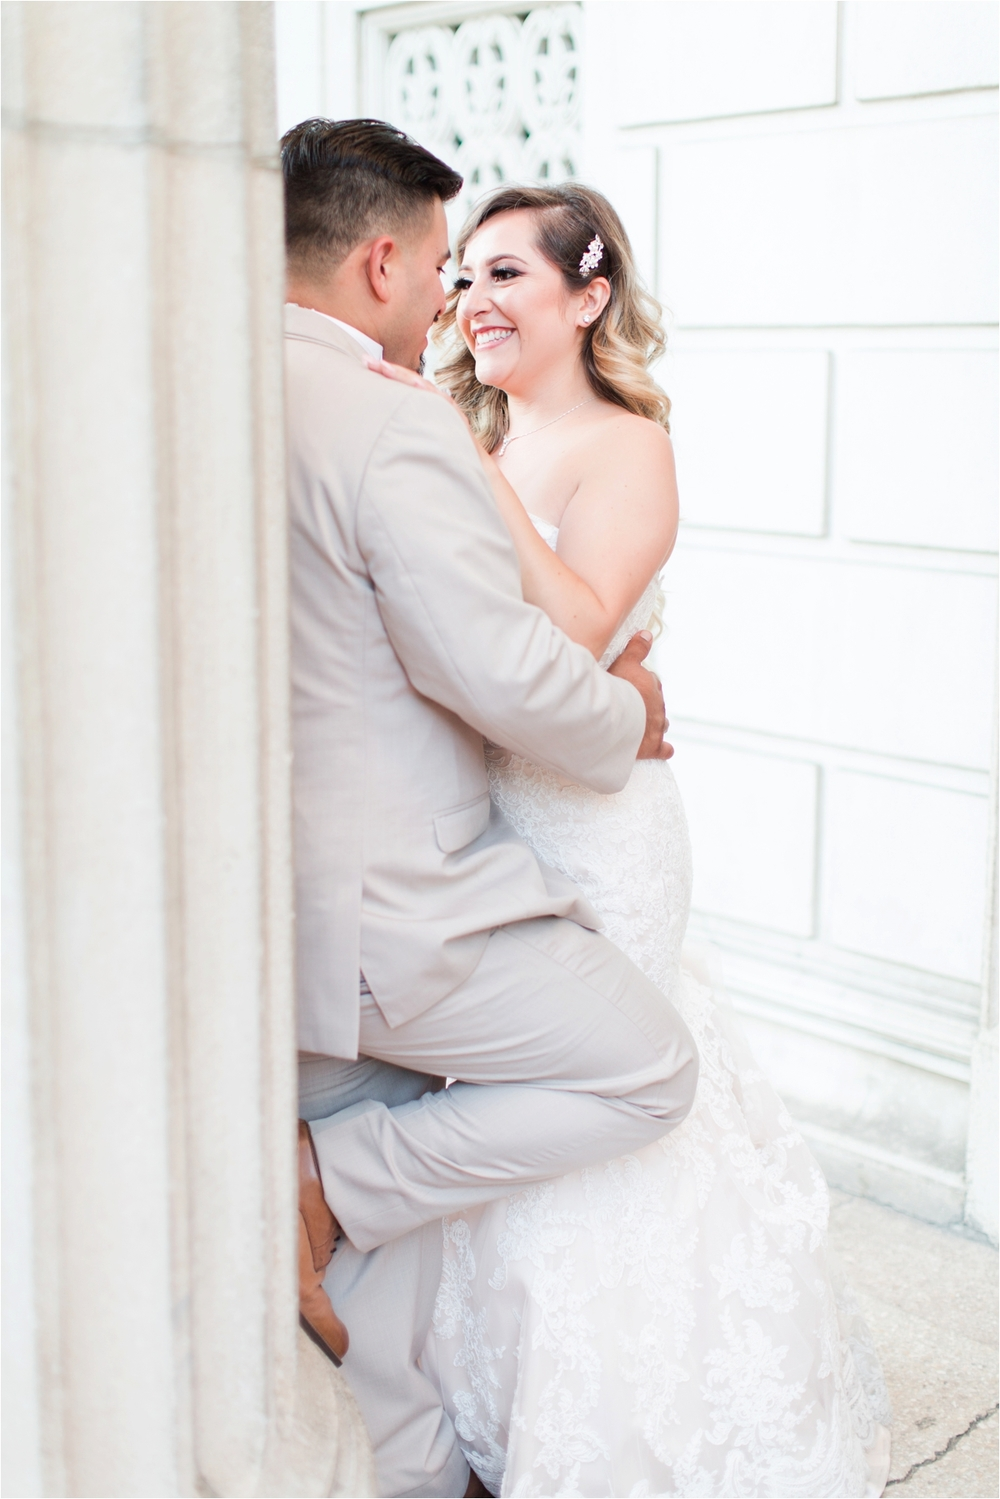 Corinthian Event Center Wedding photos by Briana Calderon Photography_0510.jpg